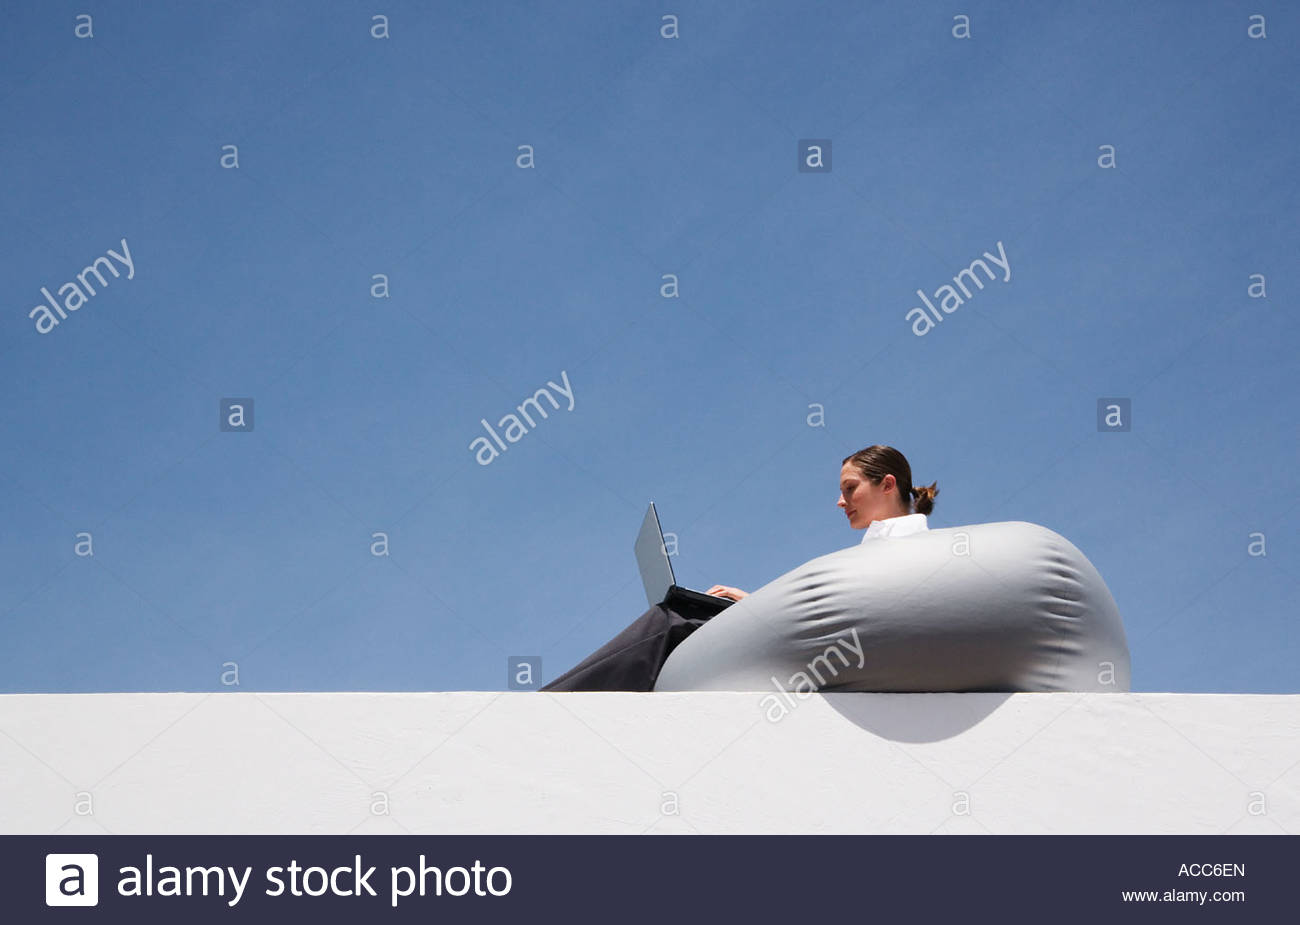 Businesswoman on beanbag chair with laptop outdoors - Stock Image